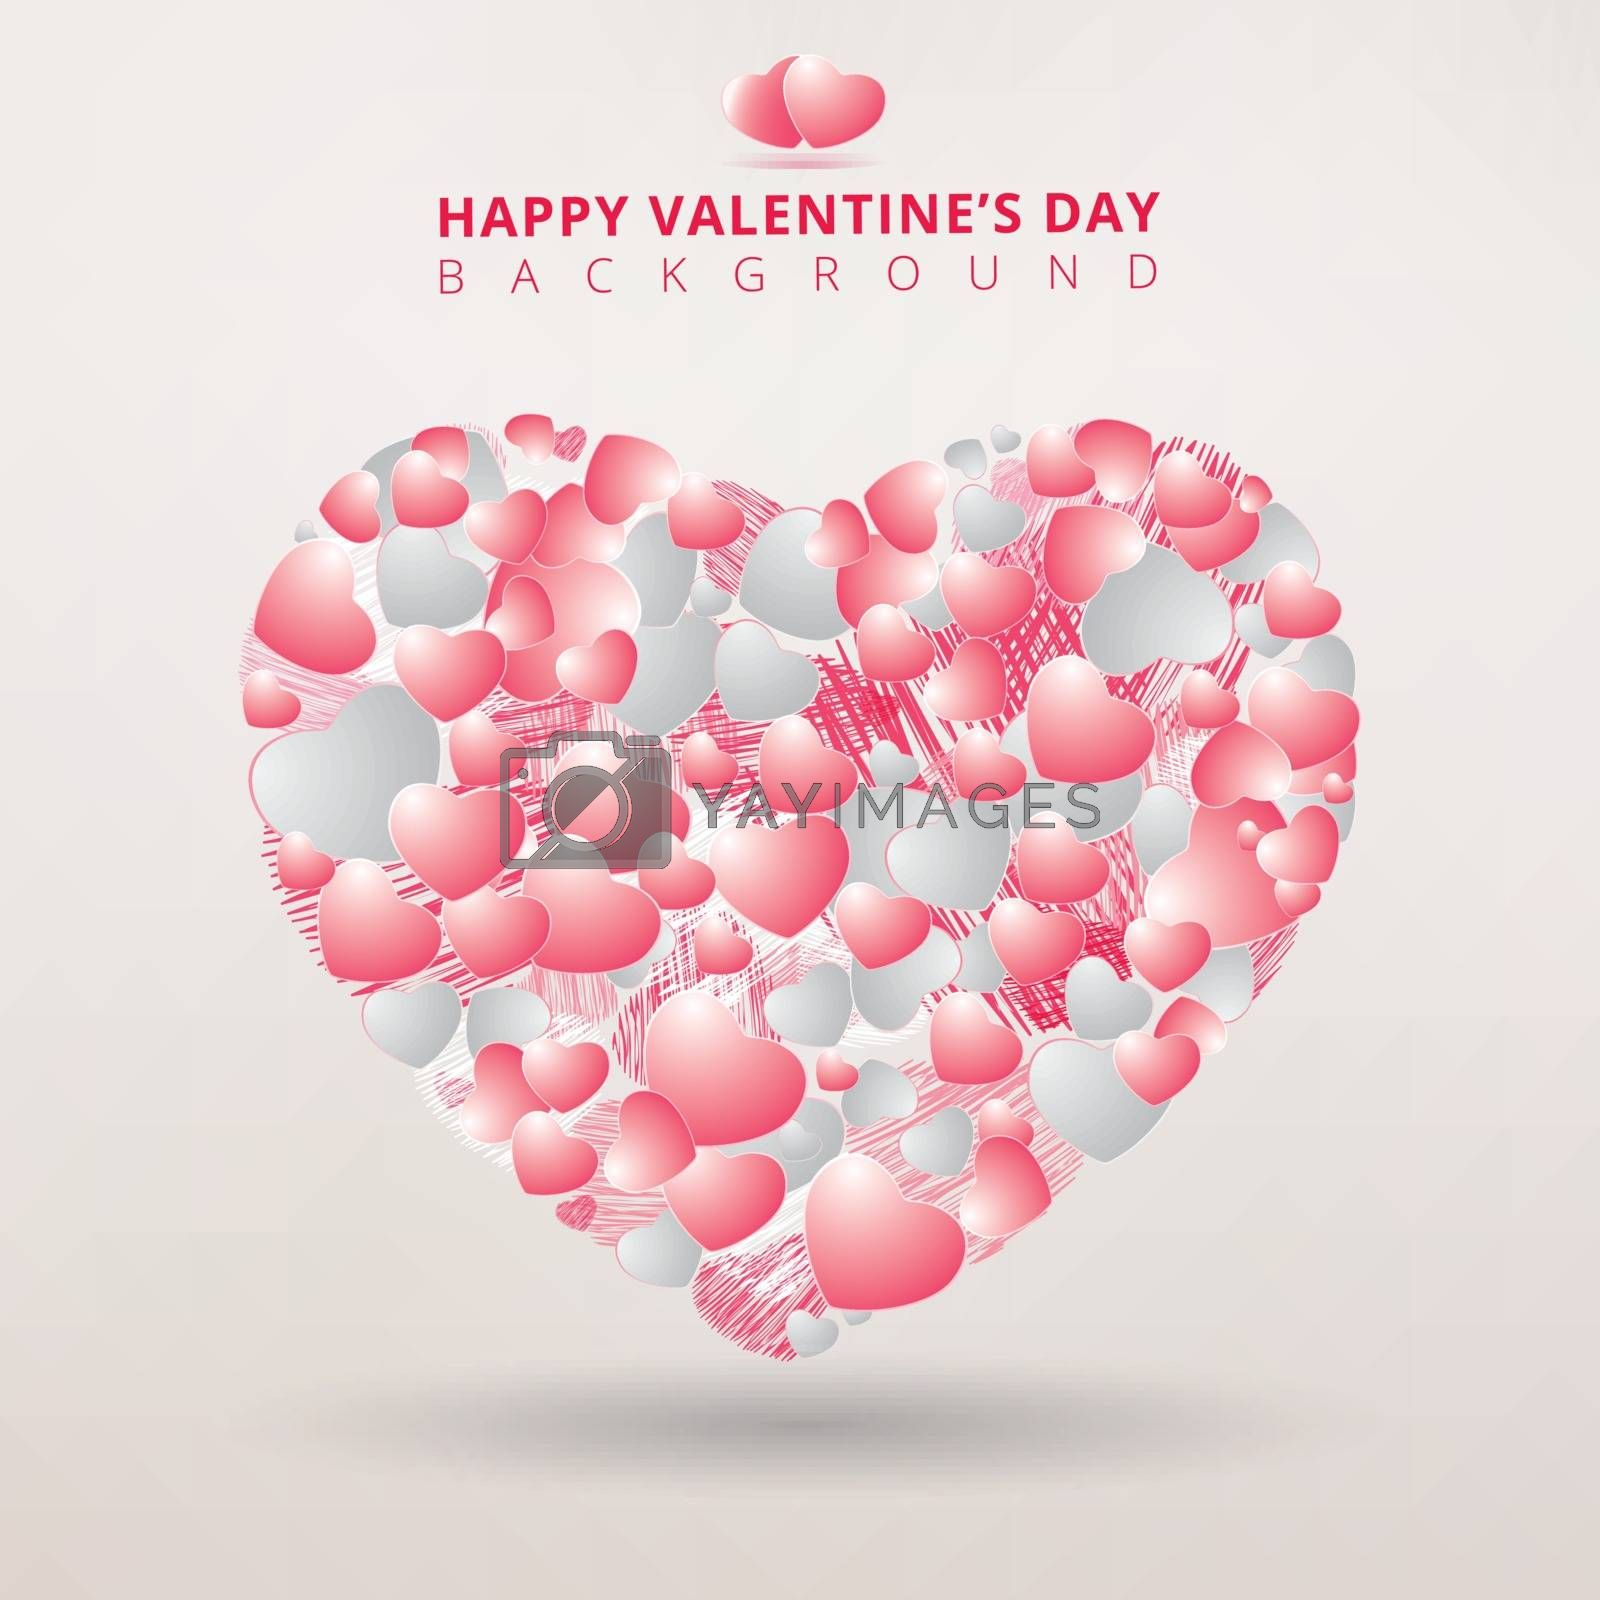 Valentines day and Decorative heart background with lot of hearts pink color on white background. Vector illustration.